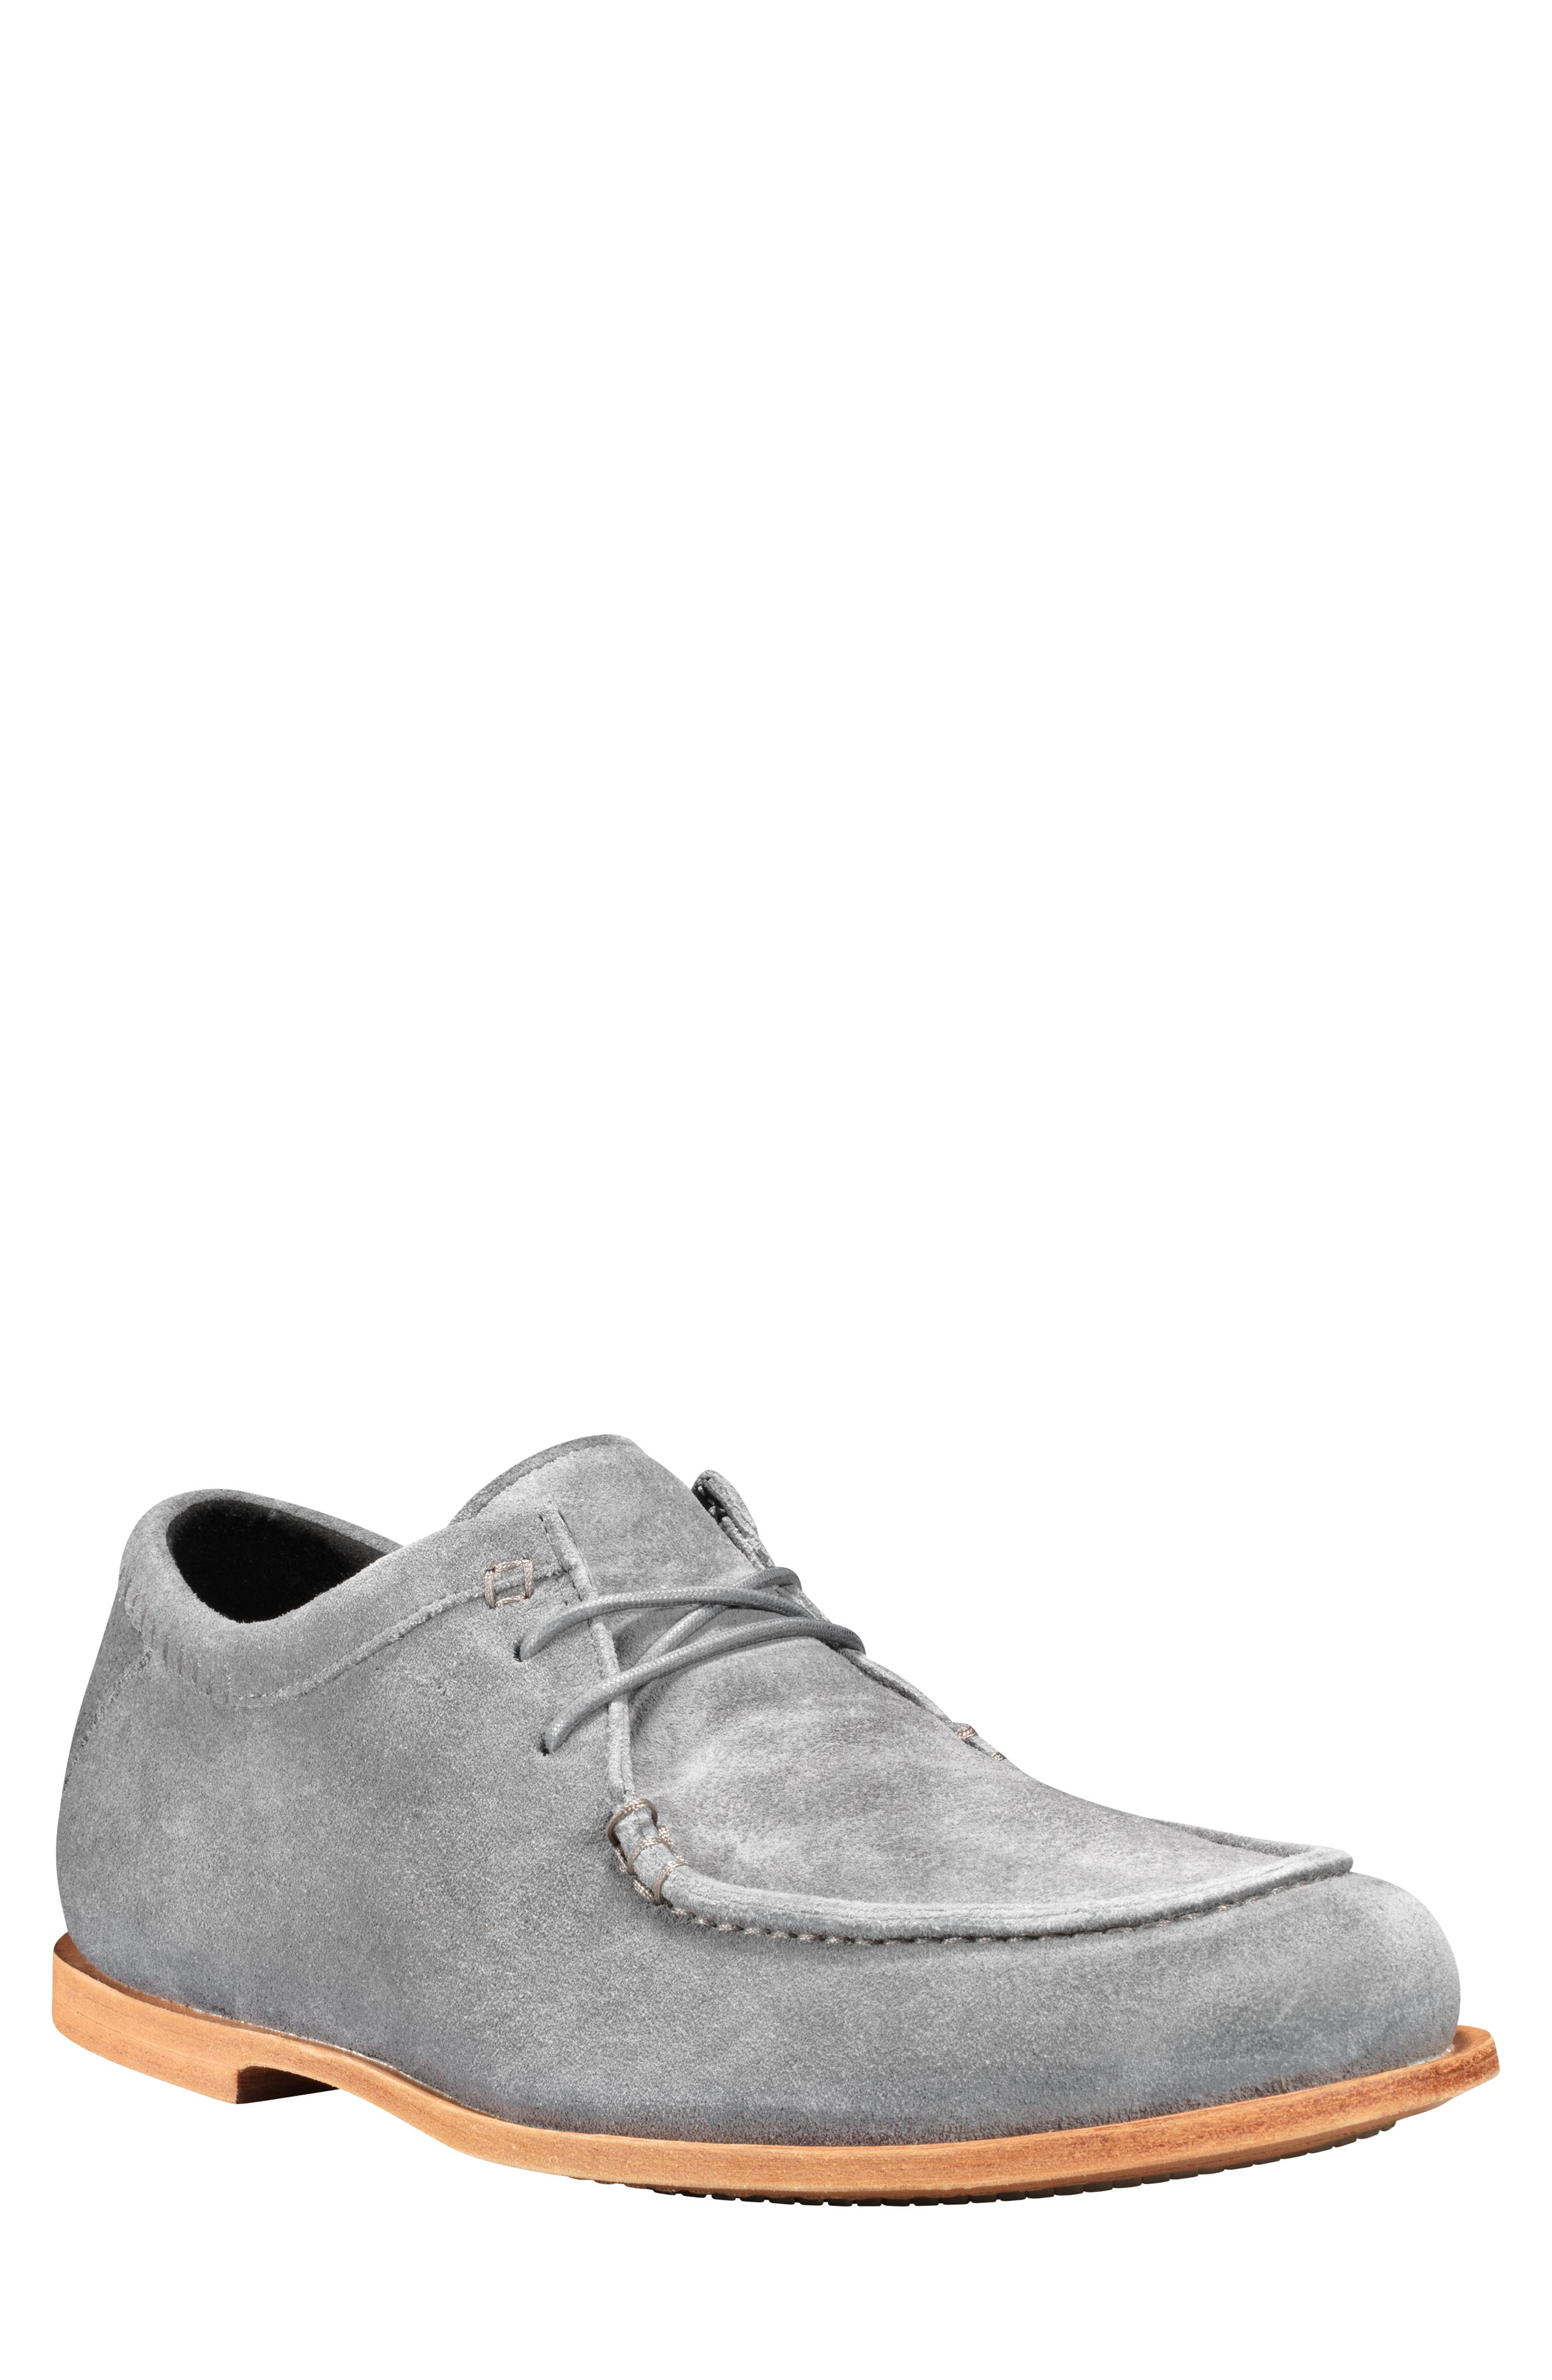 Tauk Point Moc Toe Derby,                             Main thumbnail 1, color,                             GREY SUEDE